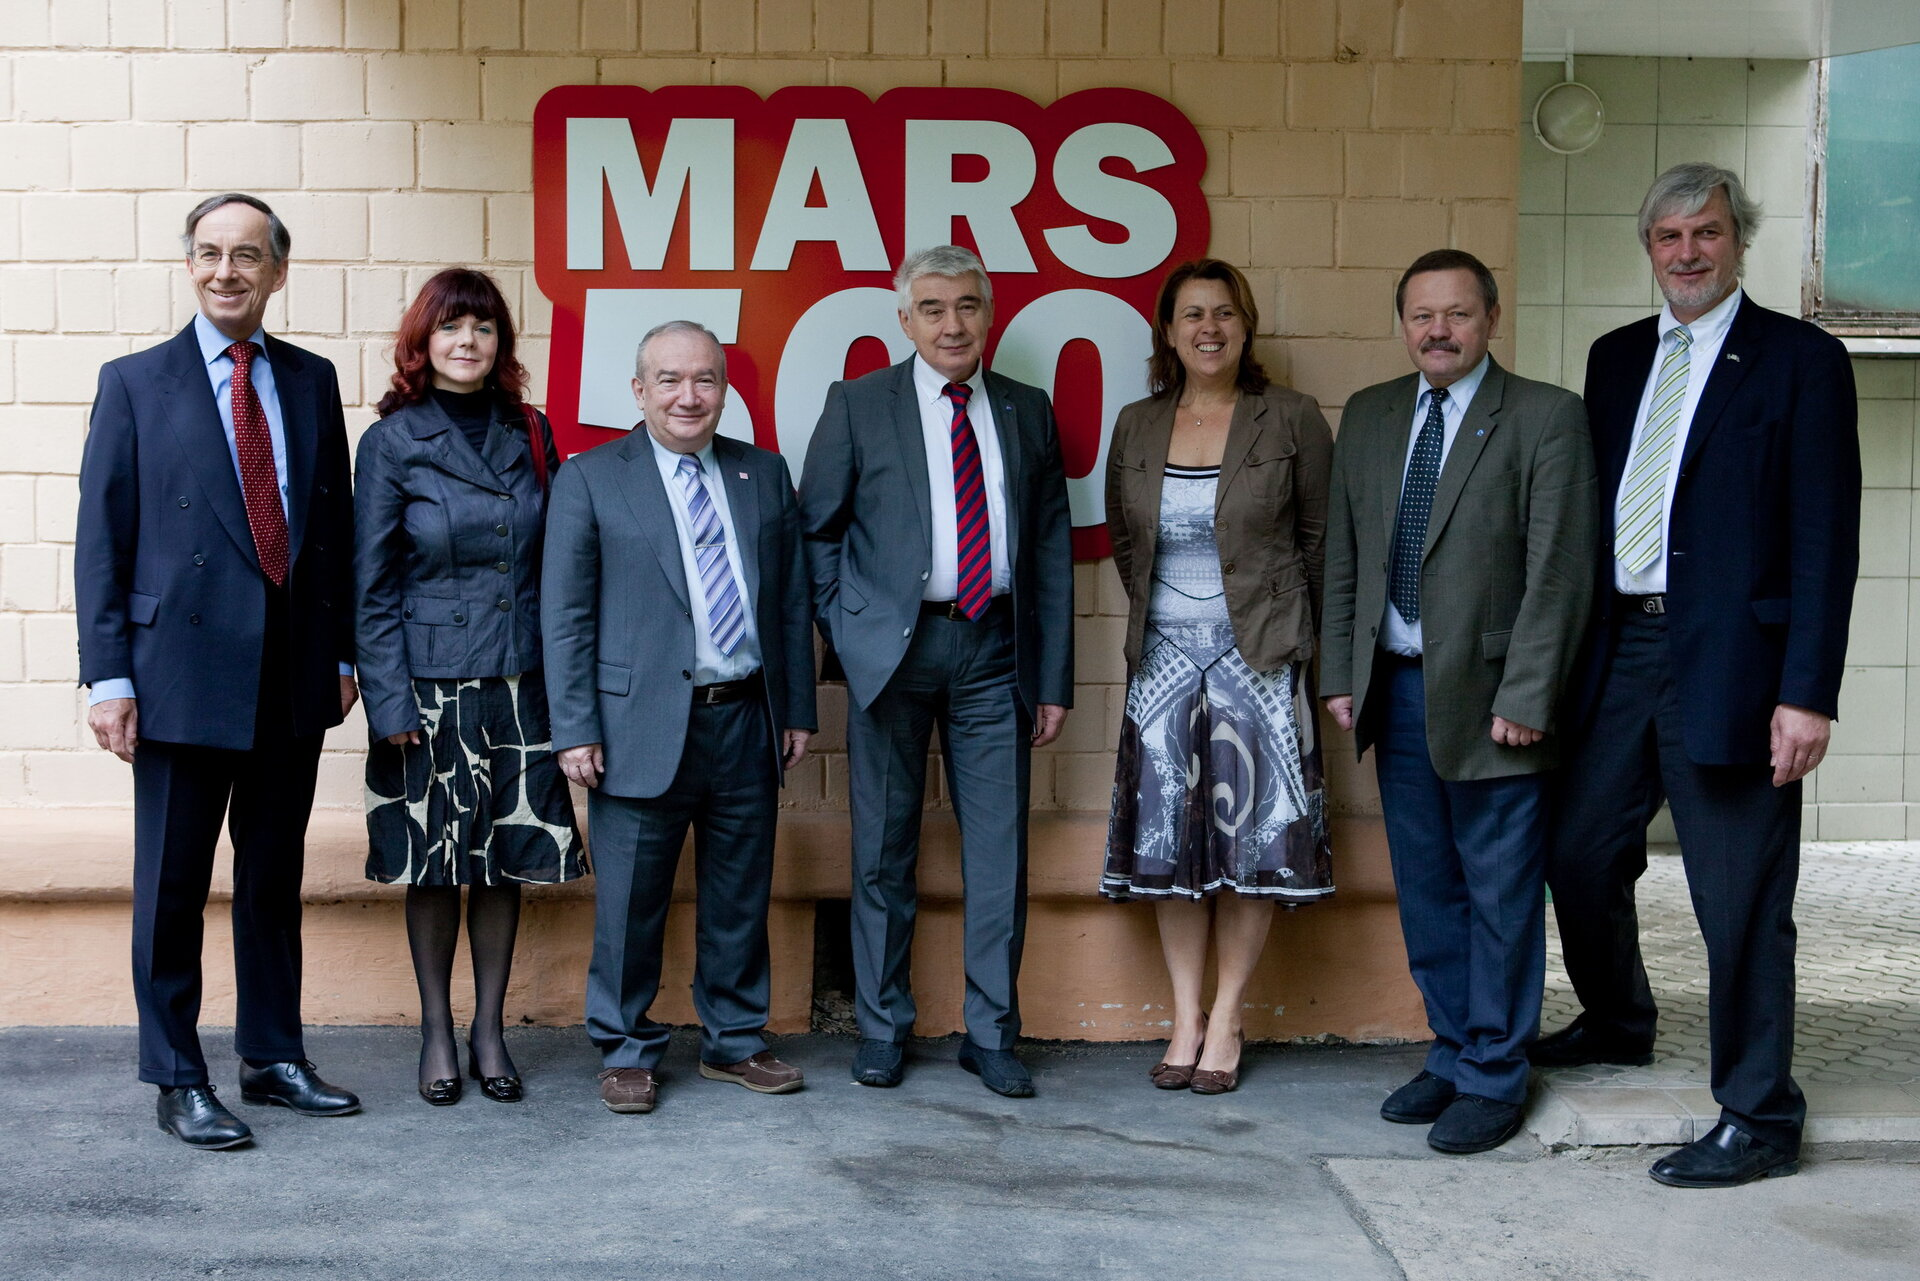 Simonetta Di Pippo visited the Mars500 facility at IBMP in Moscow, Russia